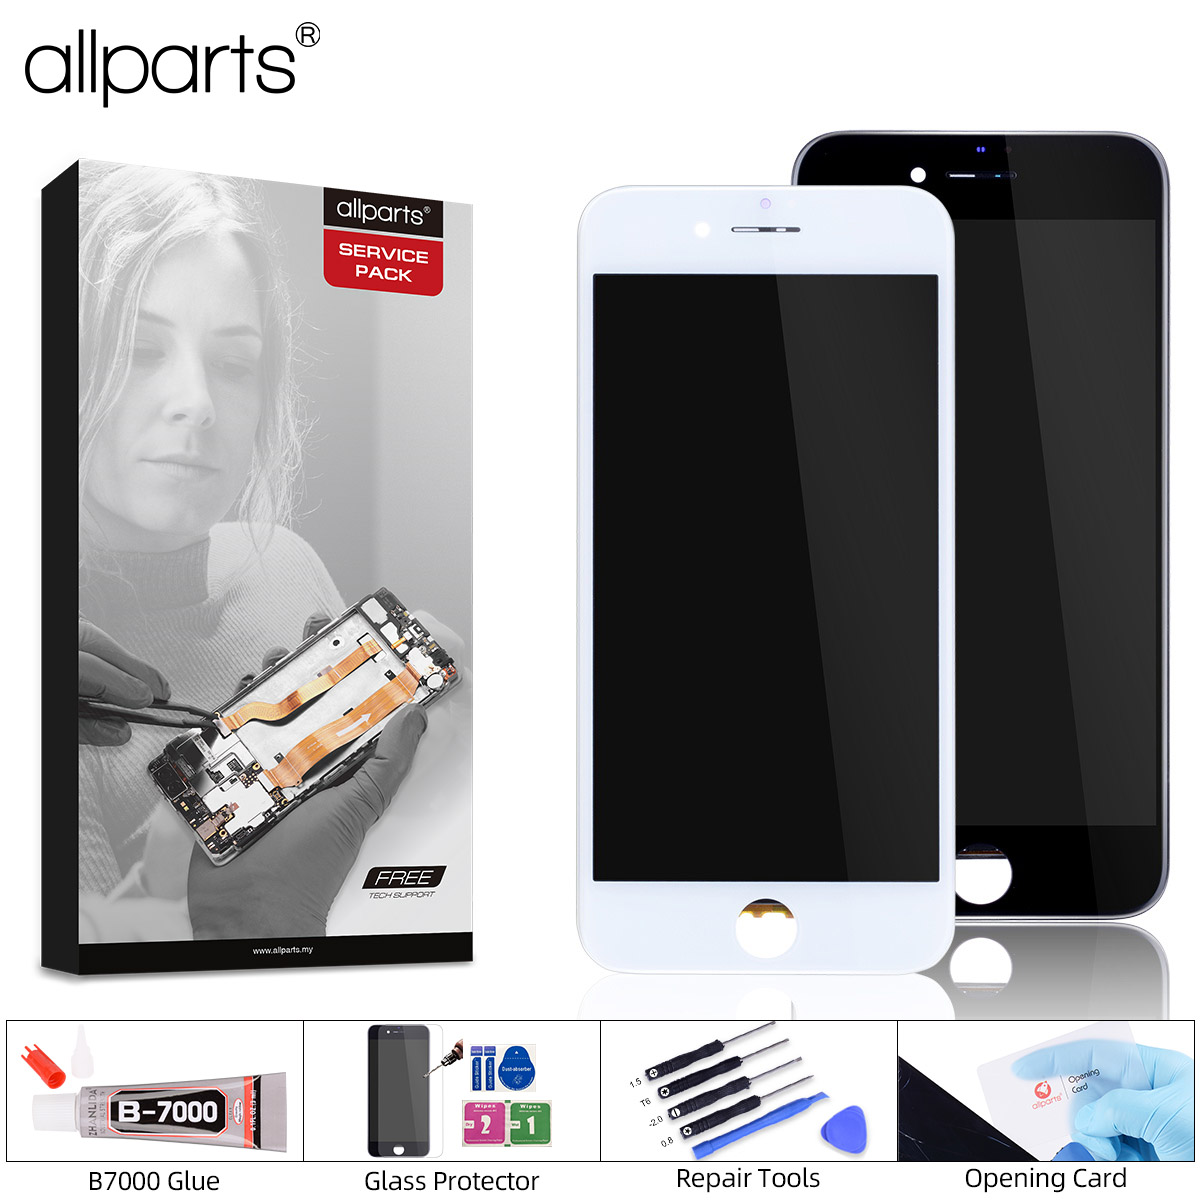 Grade AAA OEM <font><b>Display</b></font> Für <font><b>iPhone</b></font> 6 6S <font><b>LCD</b></font> Touch <font><b>Screen</b></font> Digitizer Ersatz für <font><b>iPhone</b></font> 6 Plus 7 <font><b>LCD</b></font> bildschirm für <font><b>iPhone</b></font> <font><b>5S</b></font> 6S image